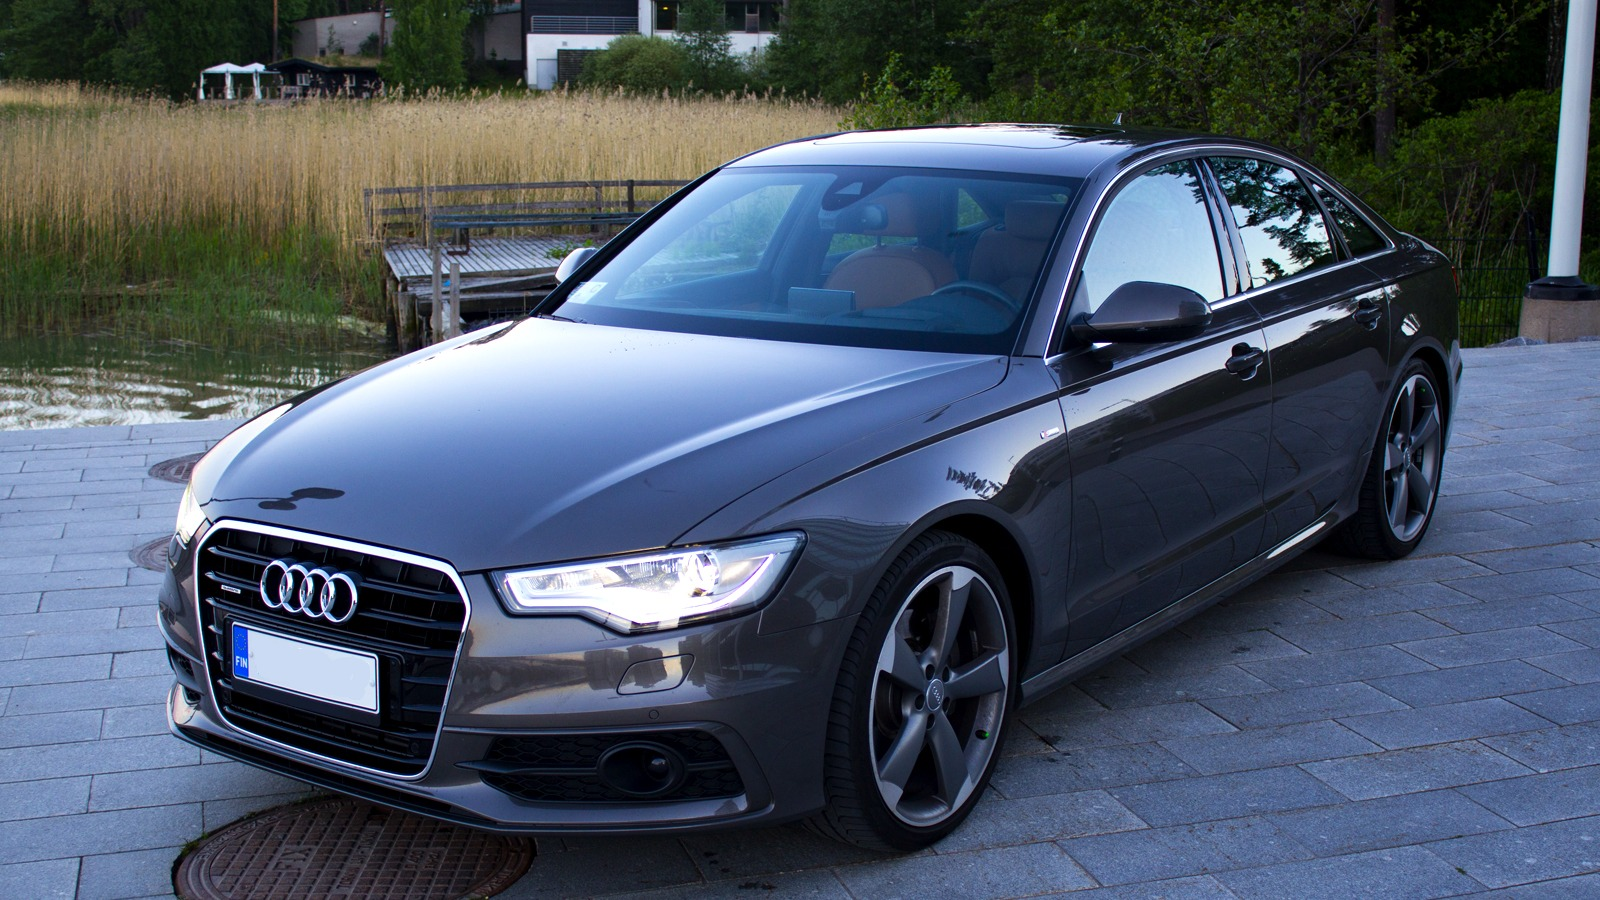 Getting A Luxury Car Without The Luxury Price